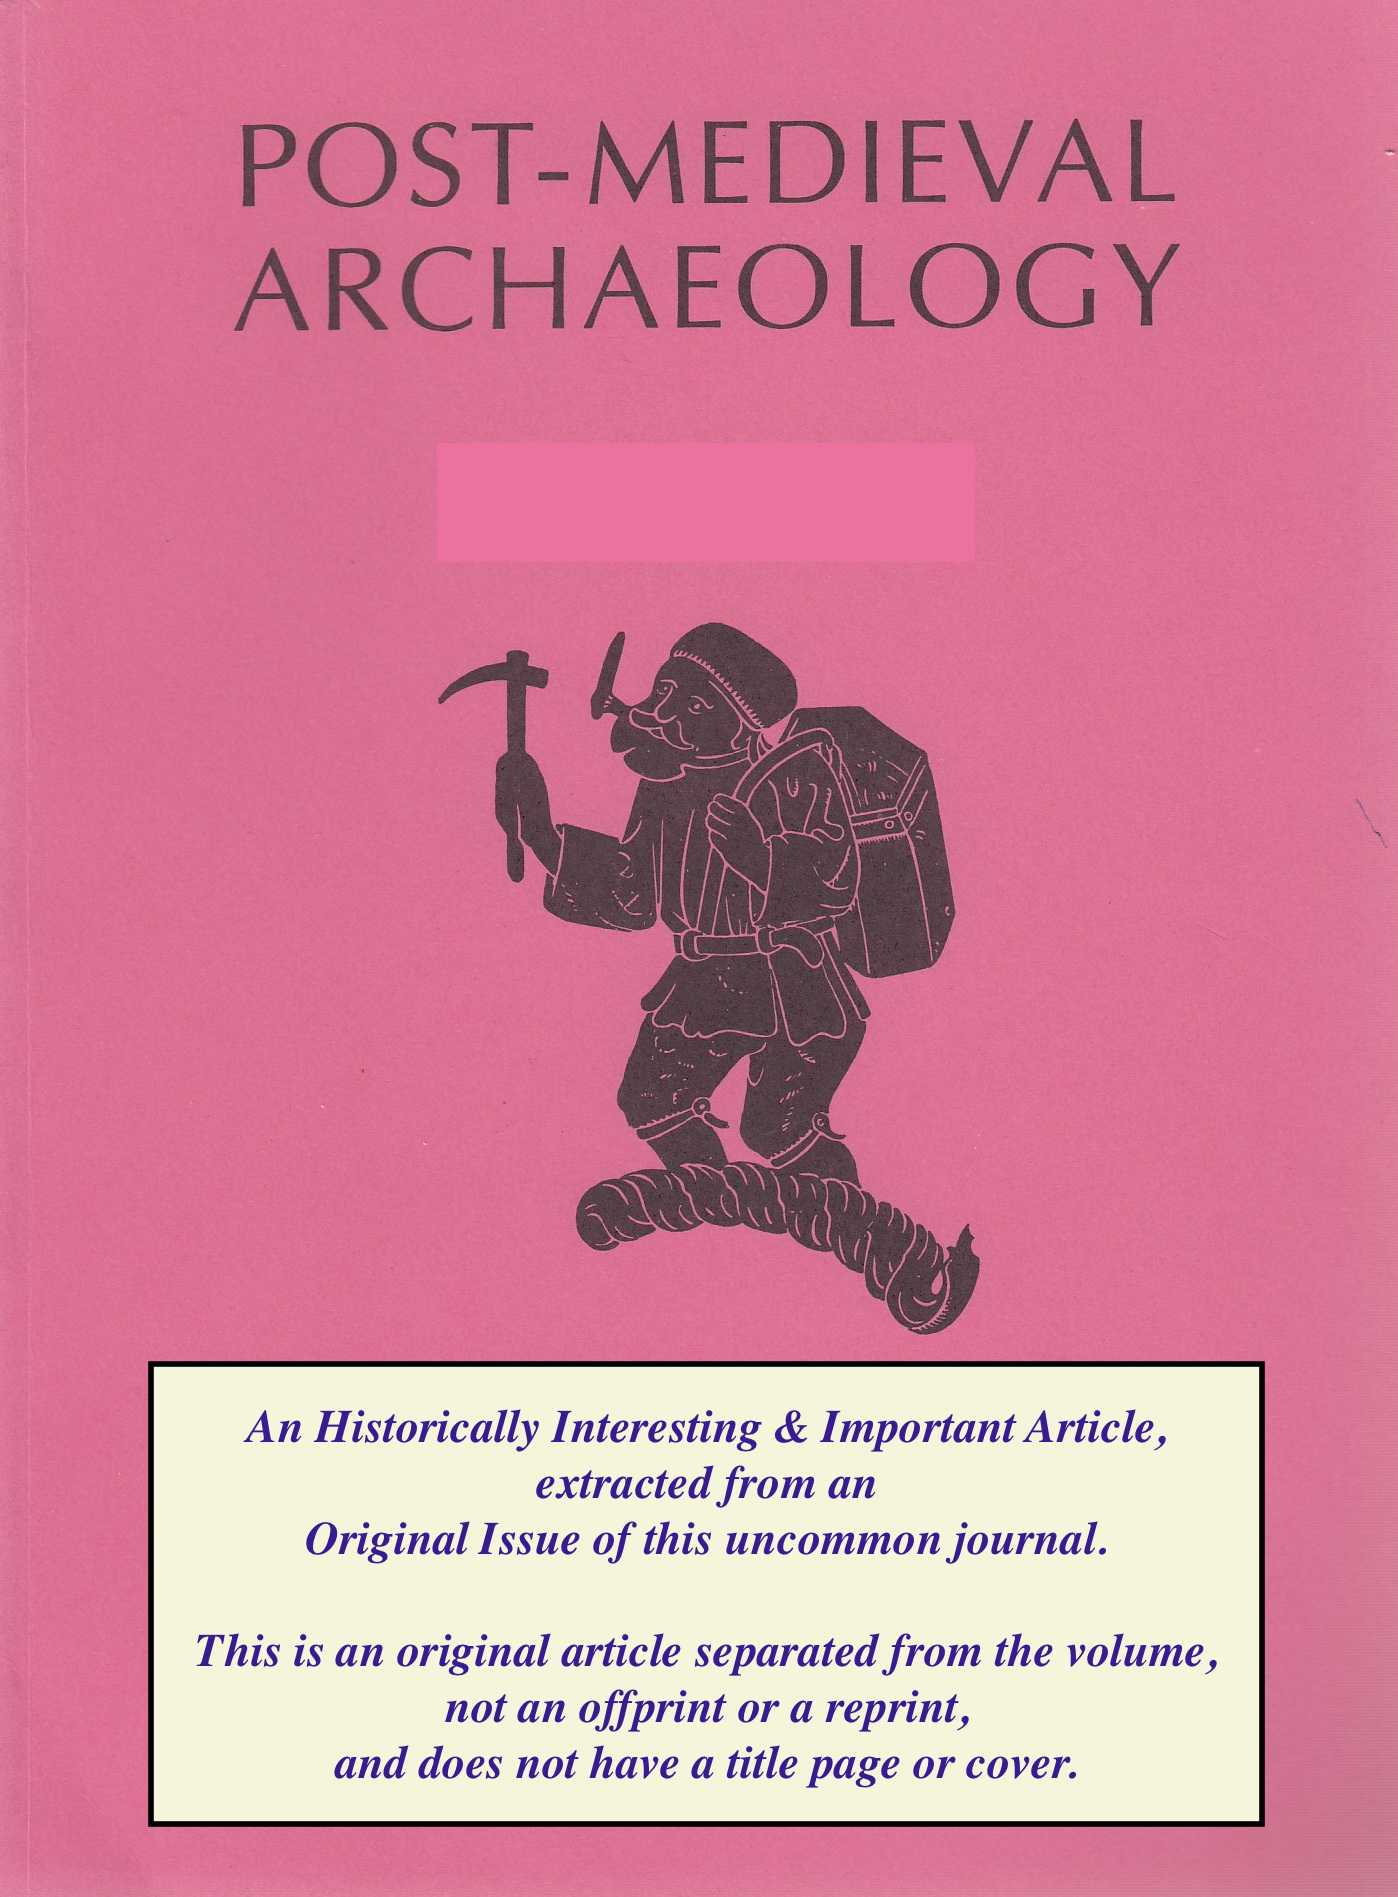 ROSS, P. BELFORD & R.A. - Industry and domesticity: exploring historical archaeology in the Ironbridge Gorge. An original article from the Post Medieval Archaeology journal, 2004.